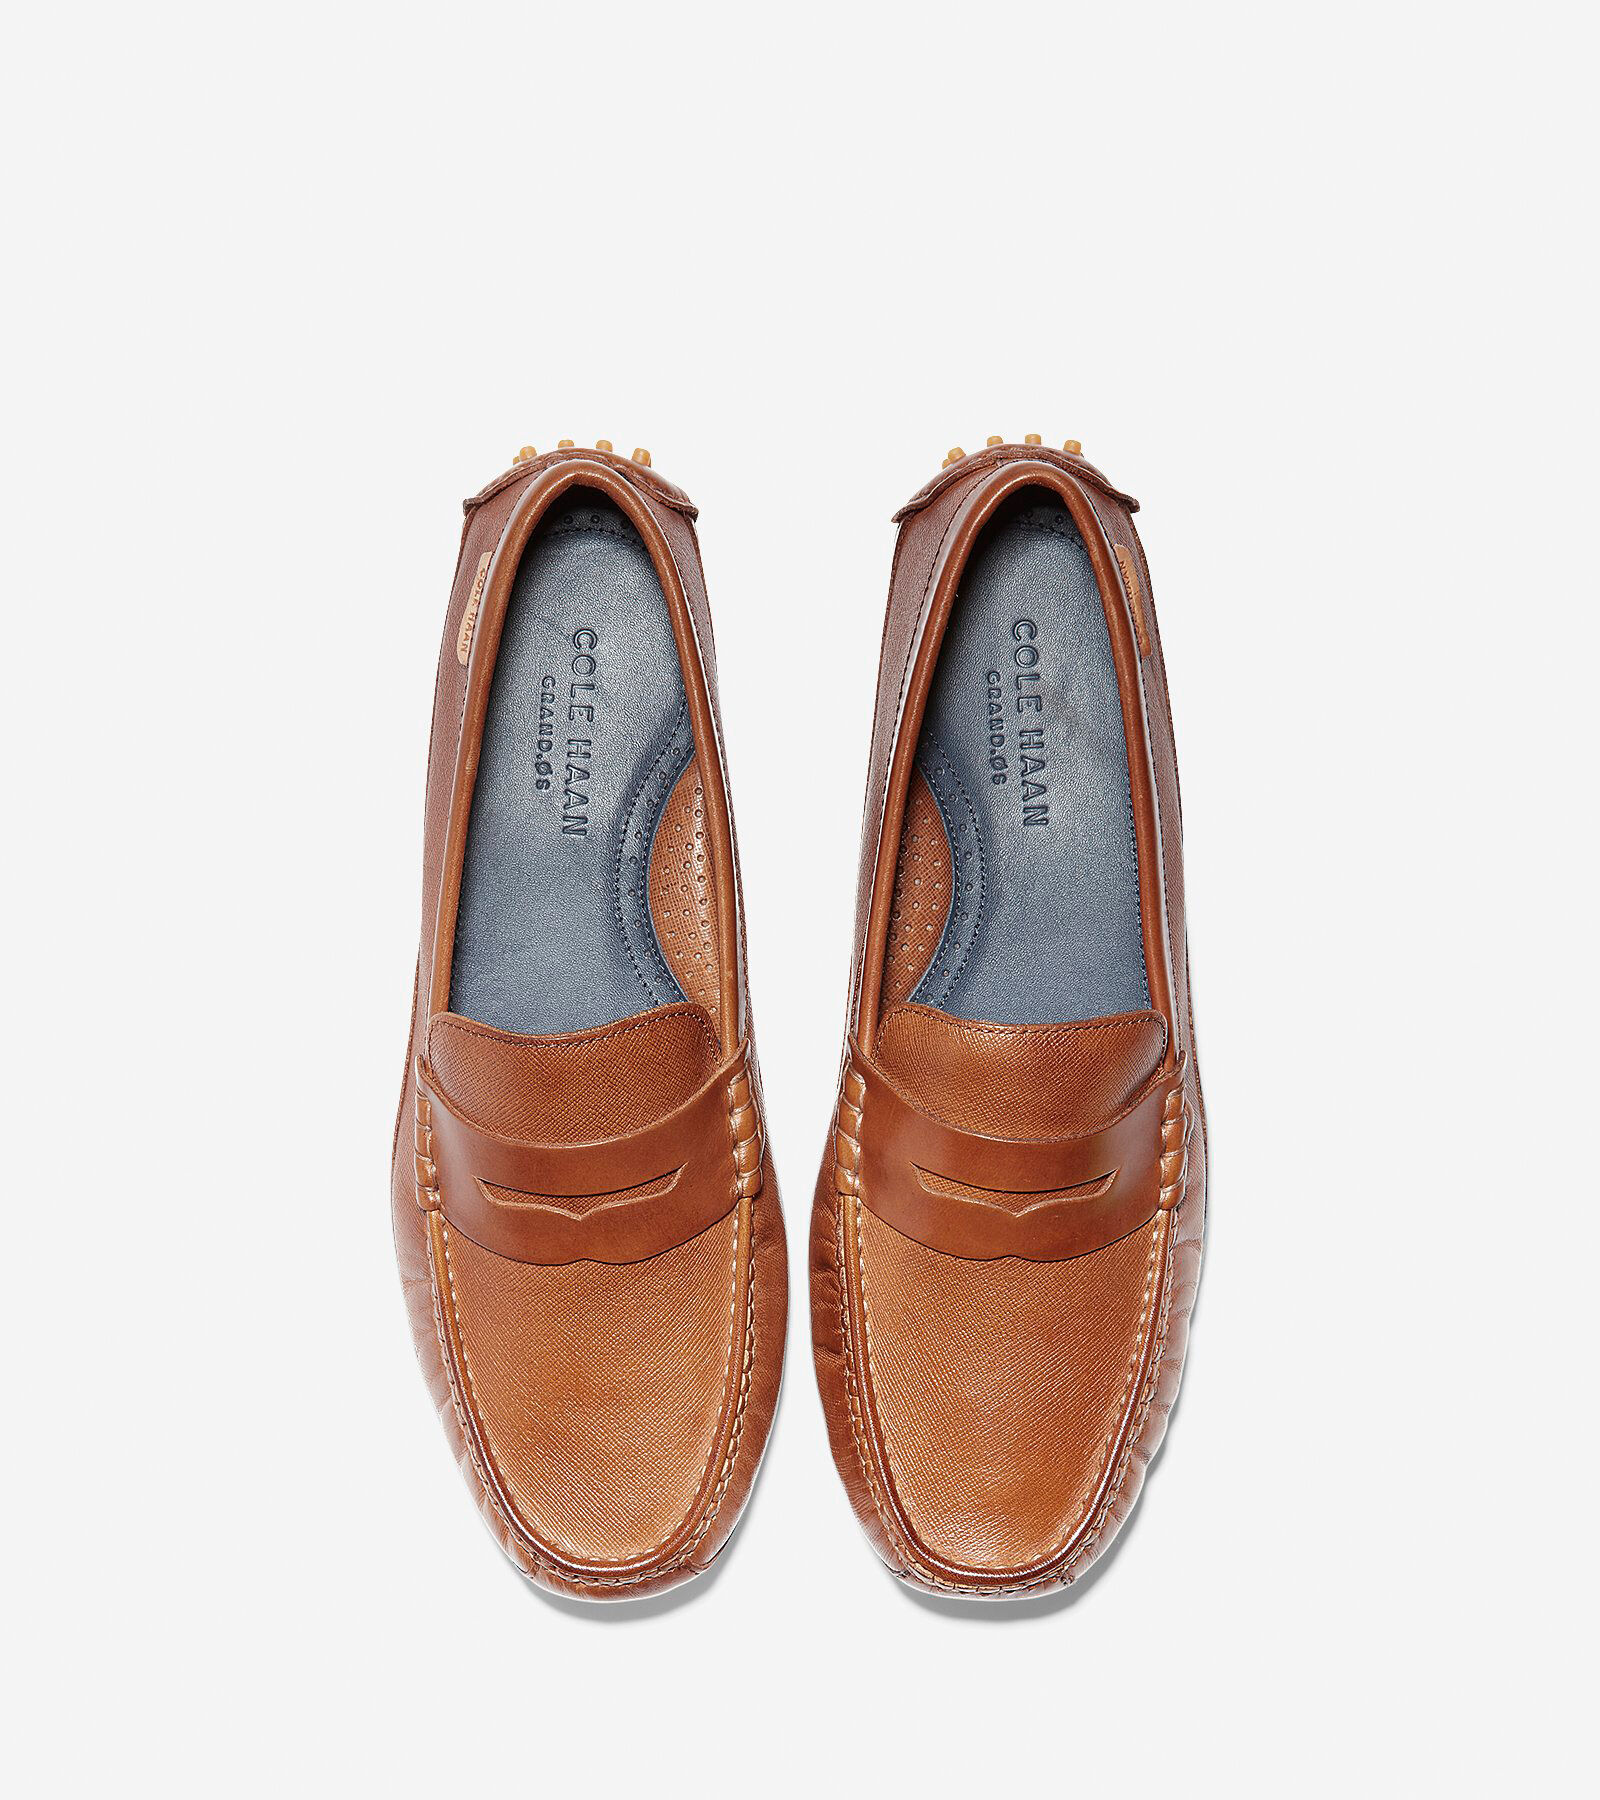 Cole Haan Men/'s Shoes Coburn Penny Driver II